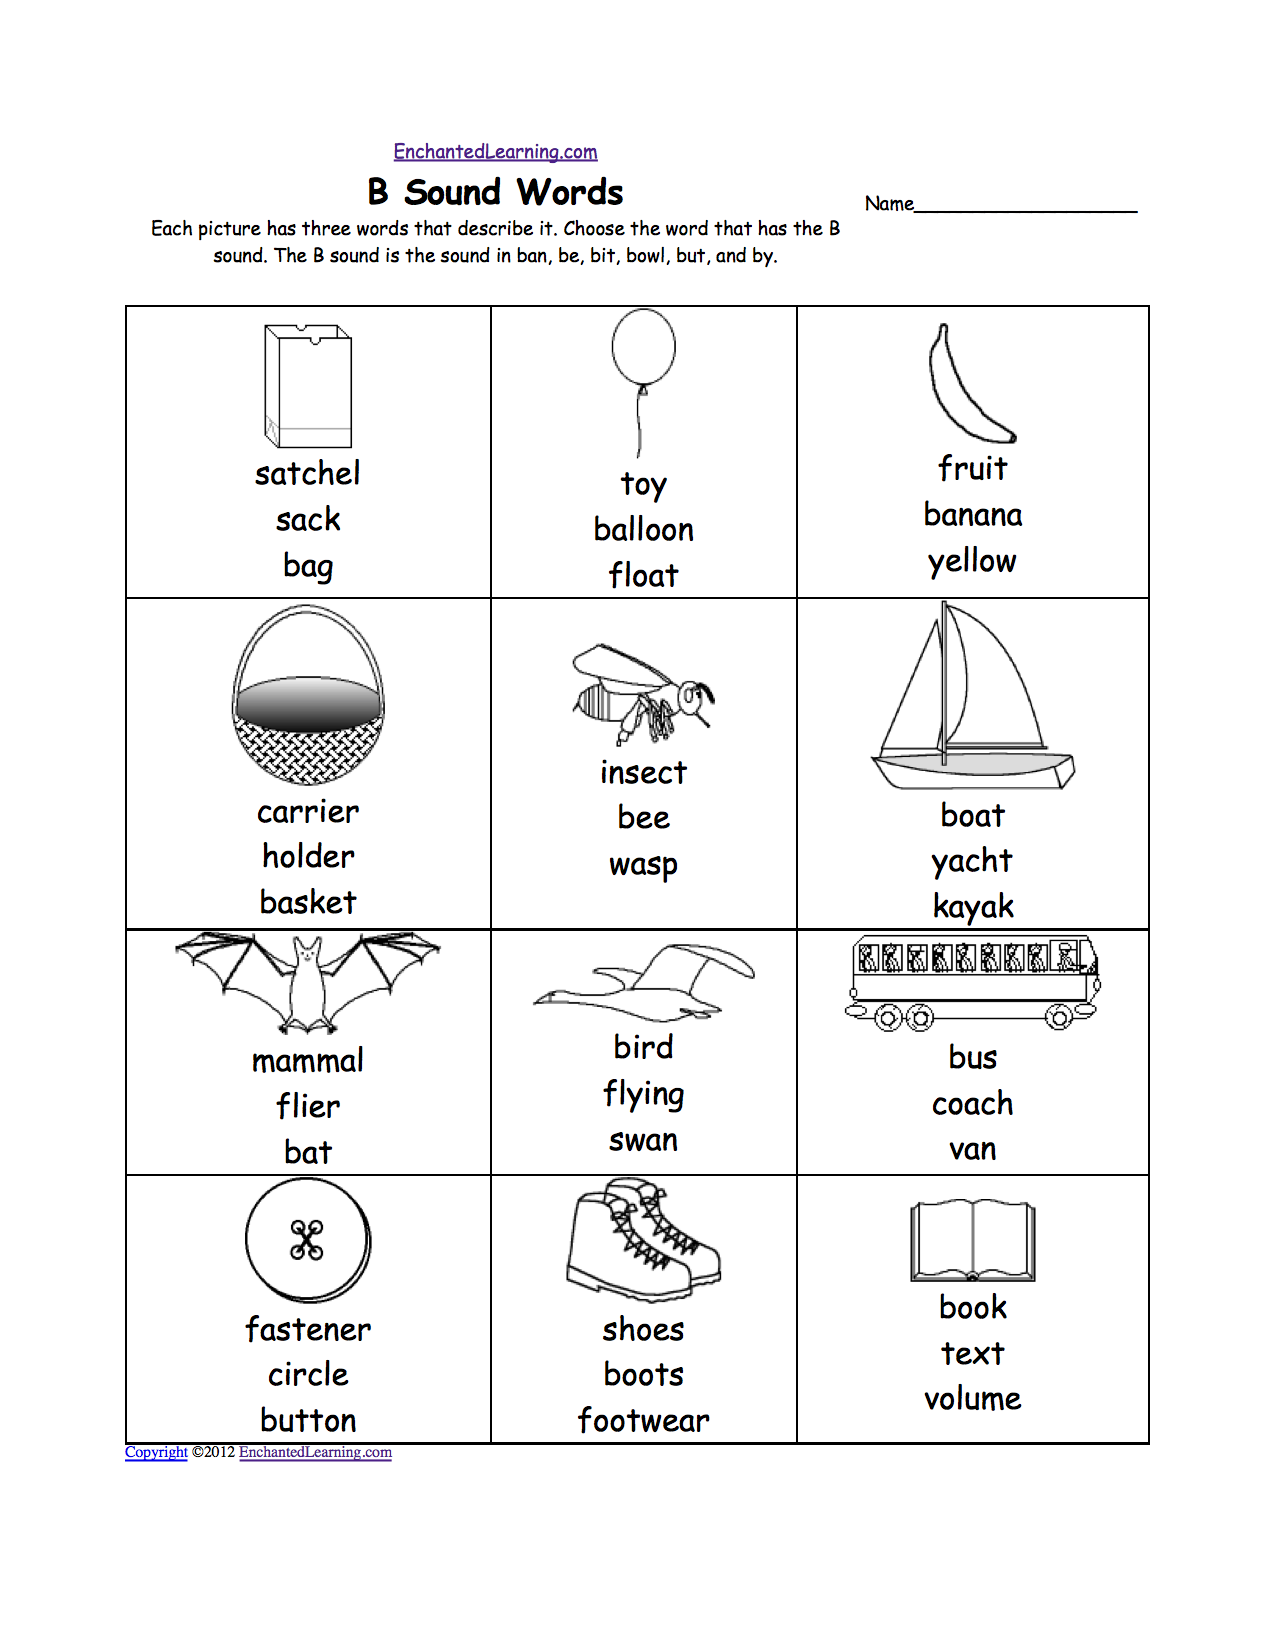 Aldiablosus  Unique Phonics Worksheets Multiple Choice Worksheets To Print  With Luxury Quotbquot Sound Phonics Worksheet Multiple Choice Each Picture Has Three Words That Describe It Choose The Word That Has A Quotbquot Sound The Quotbquot Sound Is The Sound  With Astonishing  Letter Blend Worksheets Also Worksheet On Helping Verbs In Addition Ks Time Worksheets And Reading Analogue Clocks Worksheet As Well As Measuring Distance On A Map Worksheet Additionally Number Puzzles Worksheets From Enchantedlearningcom With Aldiablosus  Luxury Phonics Worksheets Multiple Choice Worksheets To Print  With Astonishing Quotbquot Sound Phonics Worksheet Multiple Choice Each Picture Has Three Words That Describe It Choose The Word That Has A Quotbquot Sound The Quotbquot Sound Is The Sound  And Unique  Letter Blend Worksheets Also Worksheet On Helping Verbs In Addition Ks Time Worksheets From Enchantedlearningcom